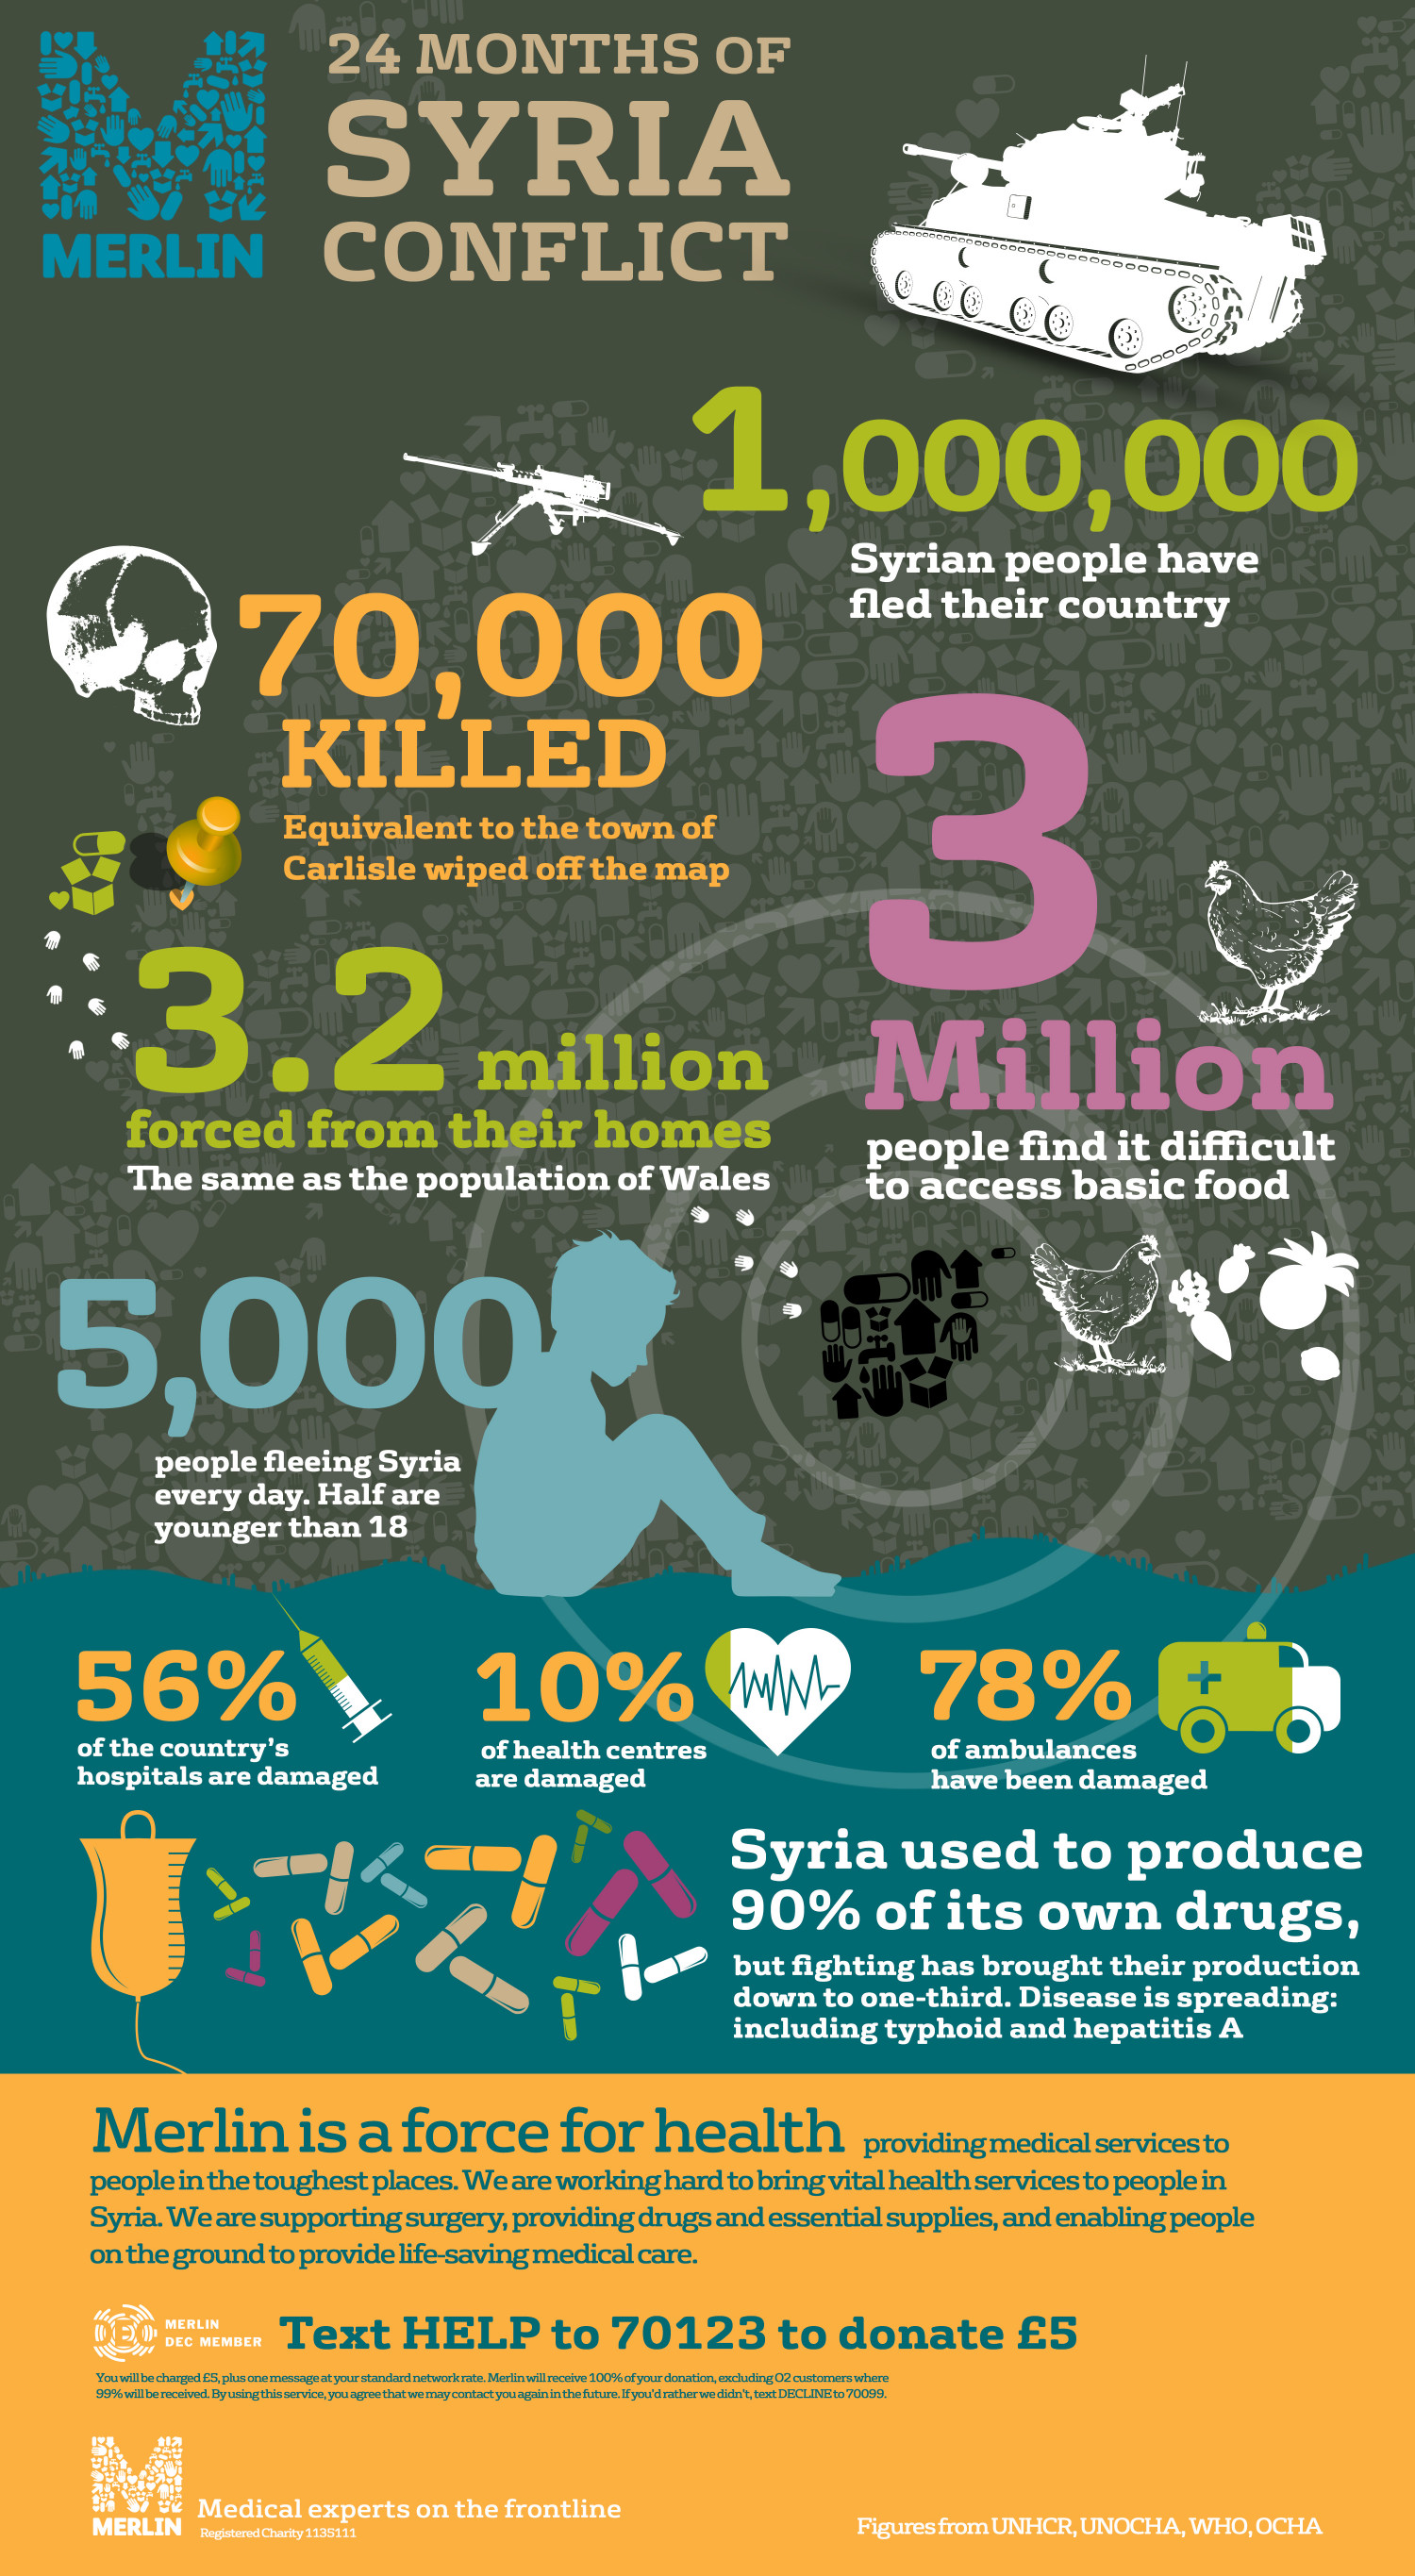 24 Months of Syria Conflict Infographic